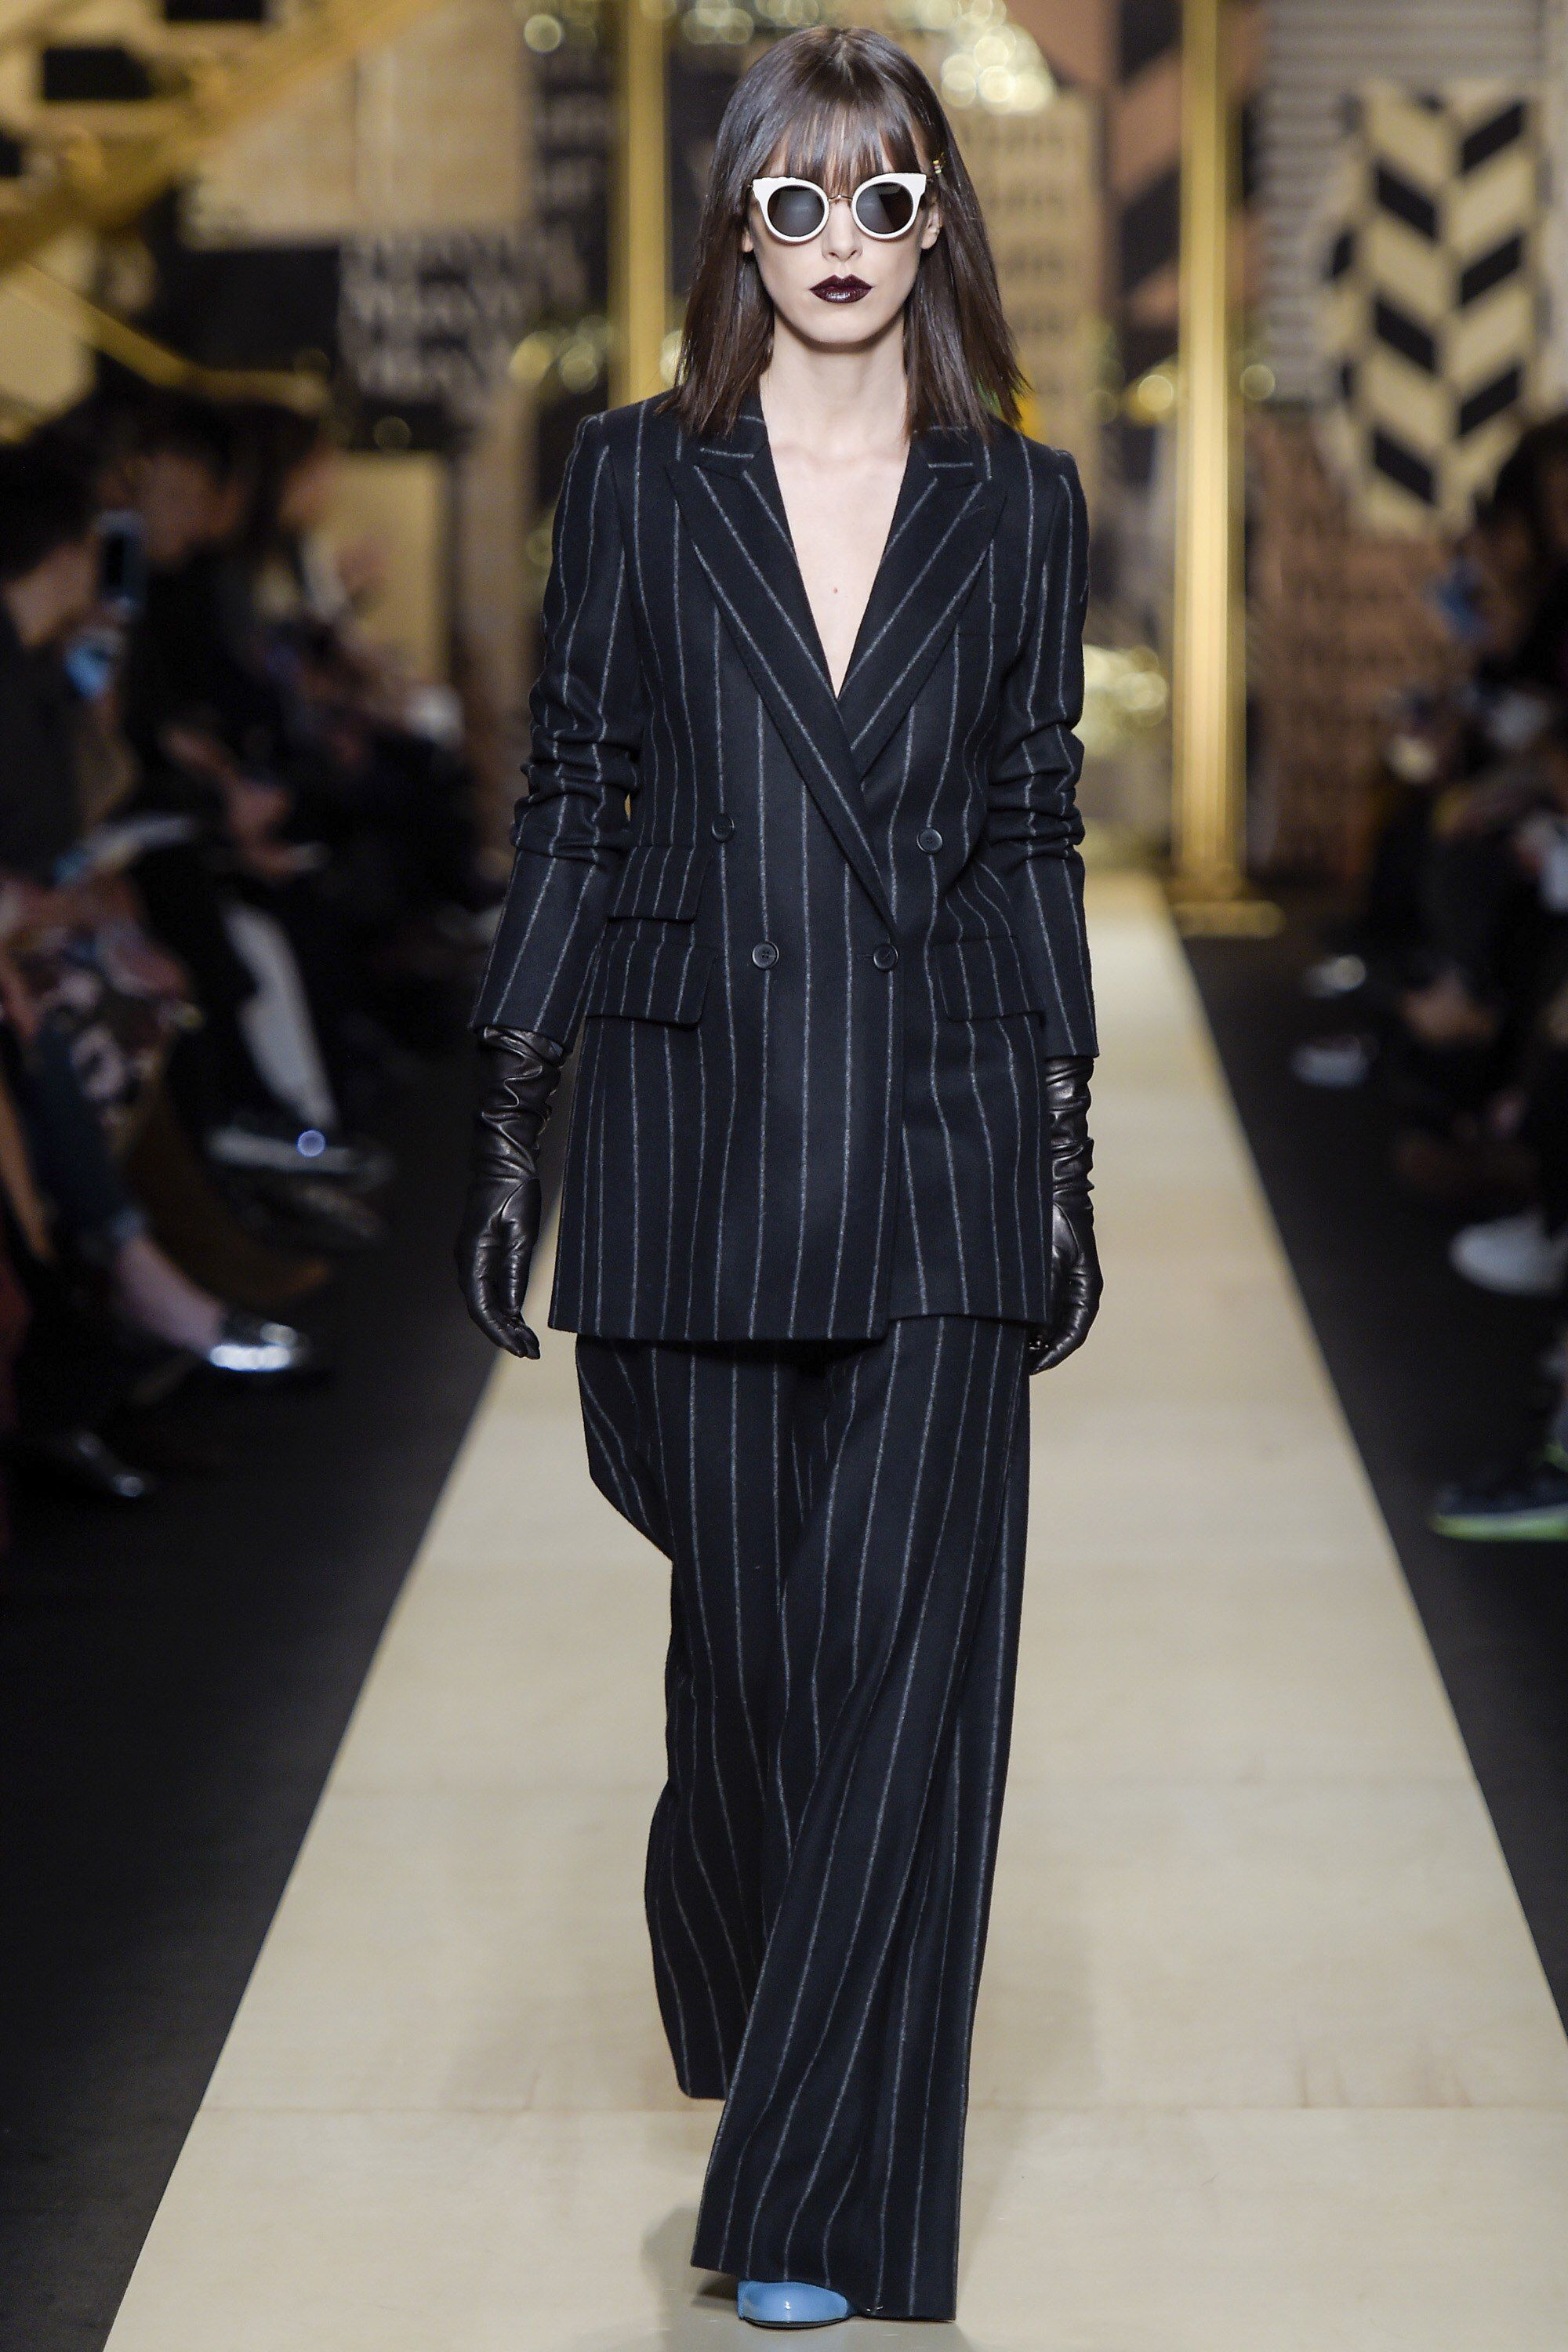 328b112cd2 Max Mara Fall 2016 Ready-to-Wear Fashion Show Collection  See the complete Max  Mara Fall 2016 Ready-to-Wear collection. Look 28